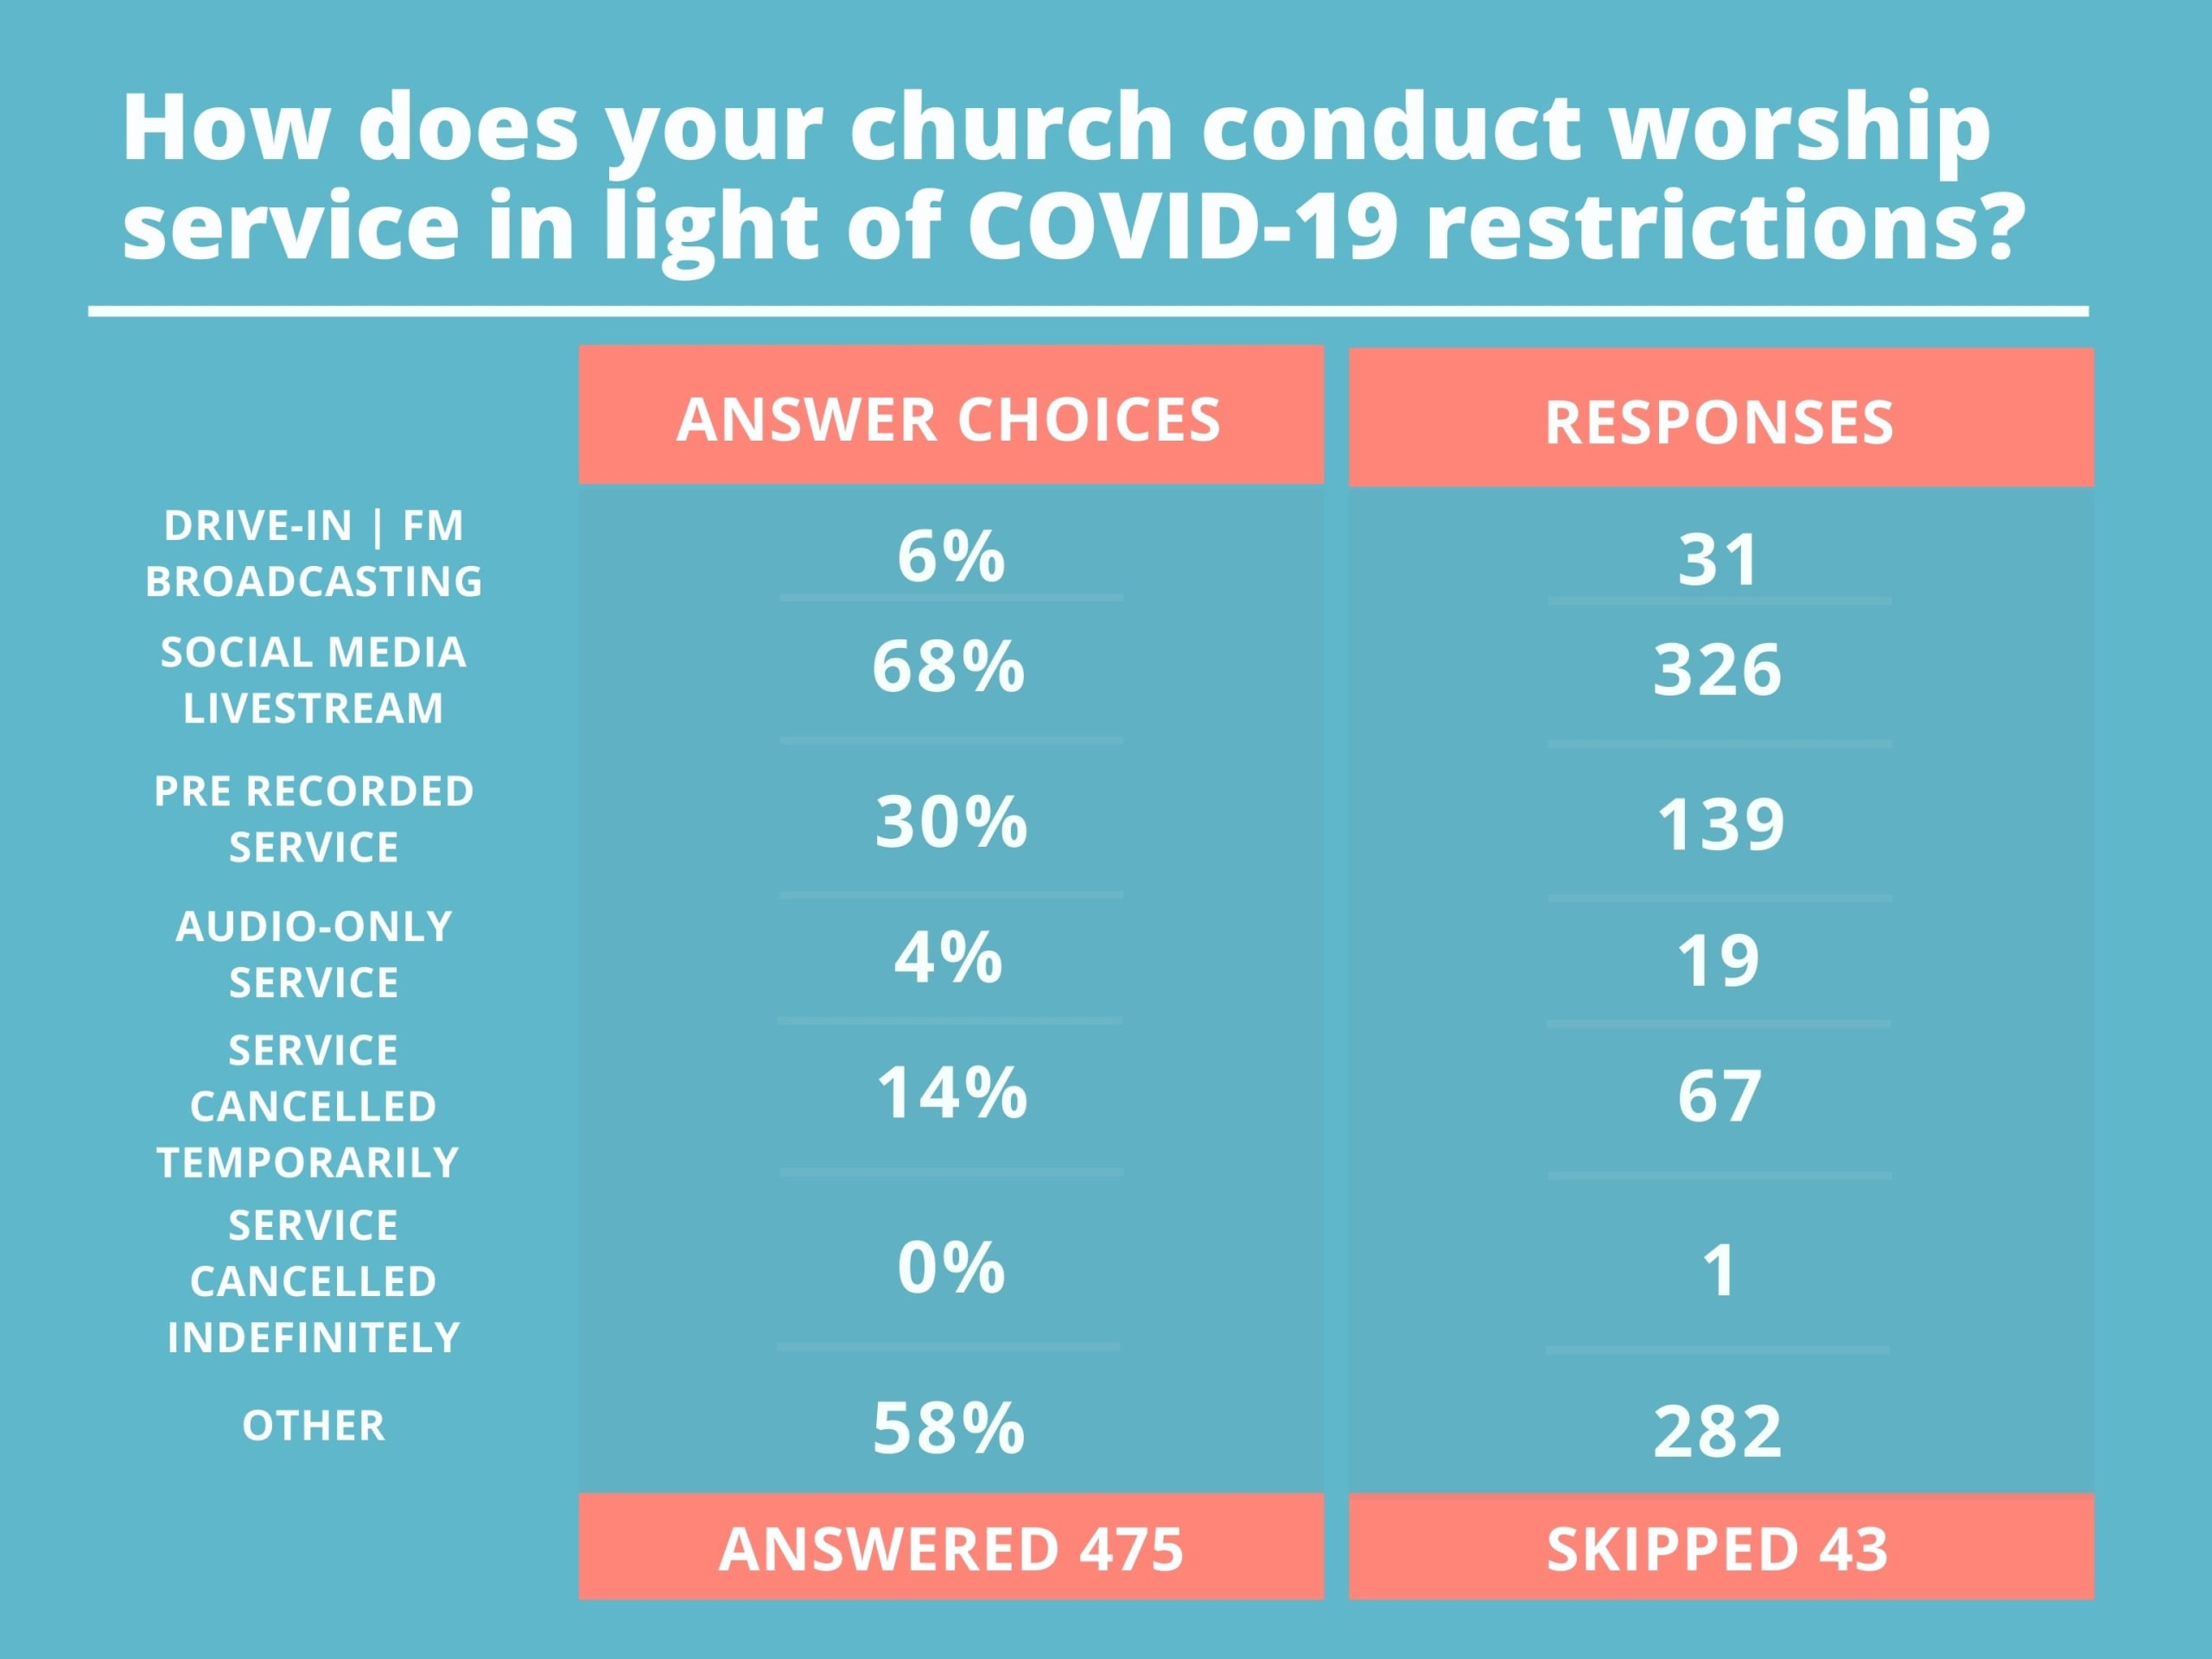 """Table 1 describing the answers and responses to """"How does your church conduct worship service in light of COVID-19 restrictions?"""""""